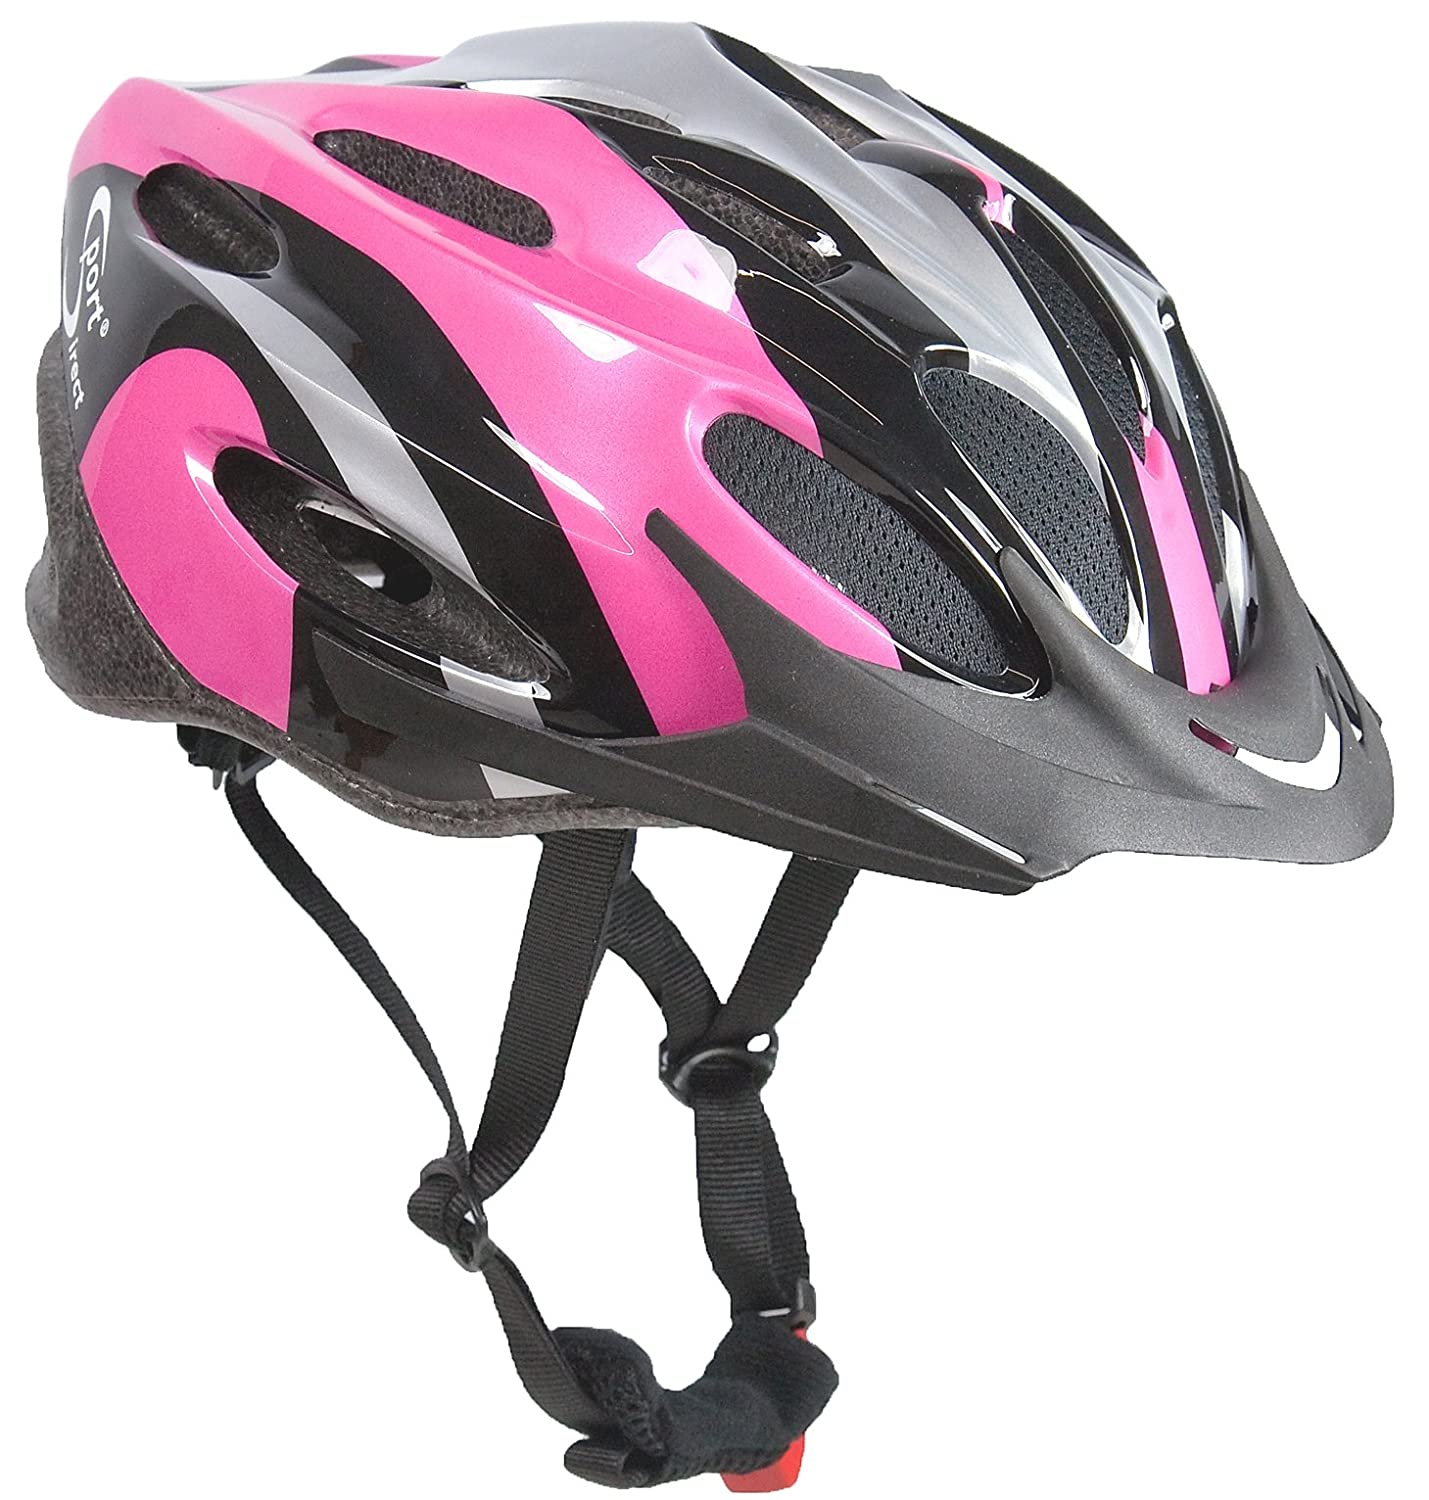 Bike Helmets For Women Vapour Bicycle Helmet